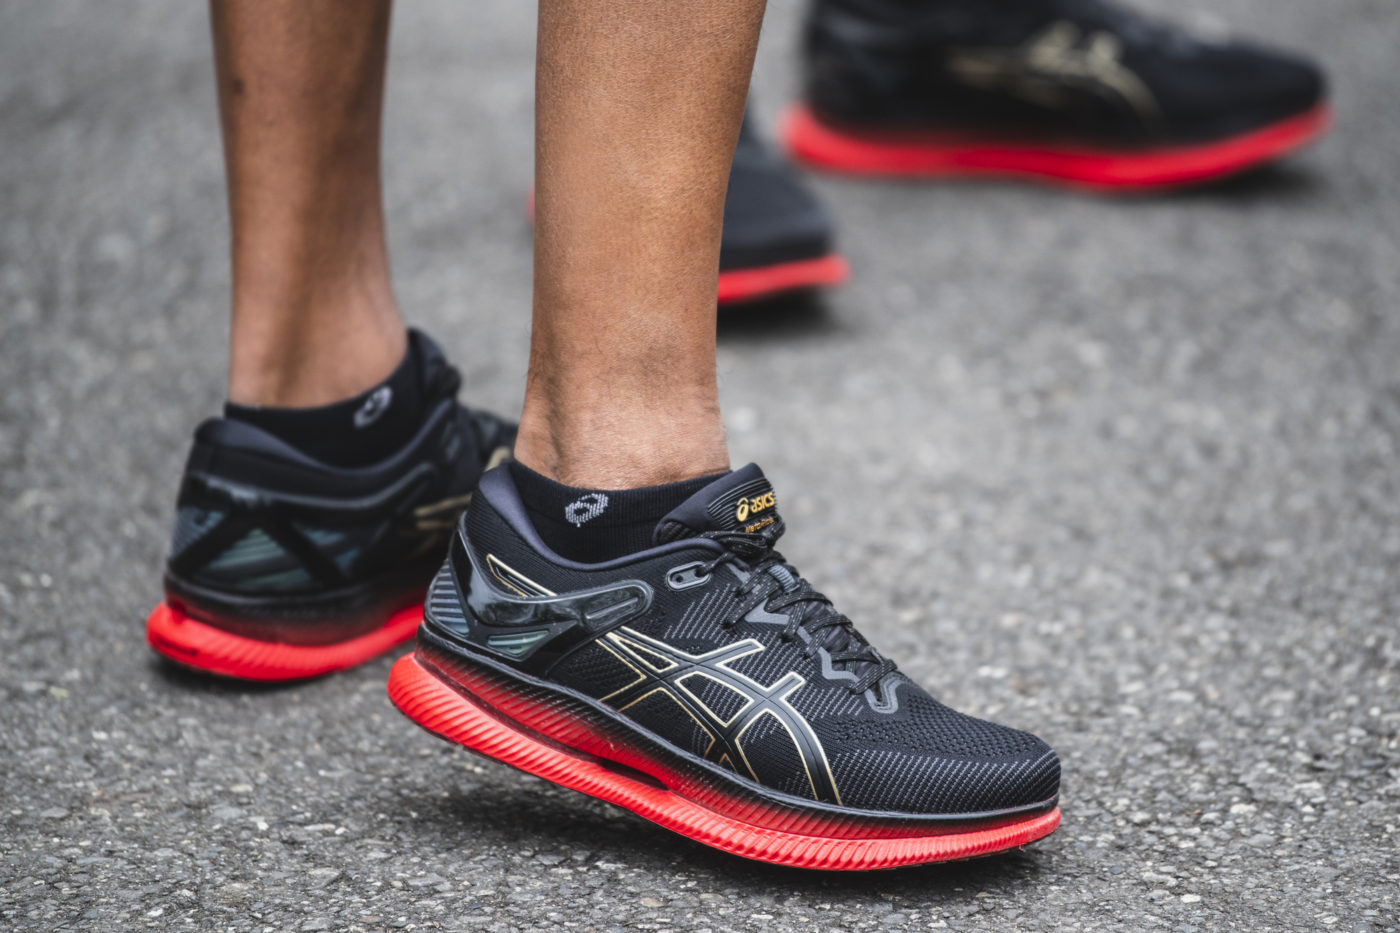 chaussures-course-a-pied-asics-metaride-10